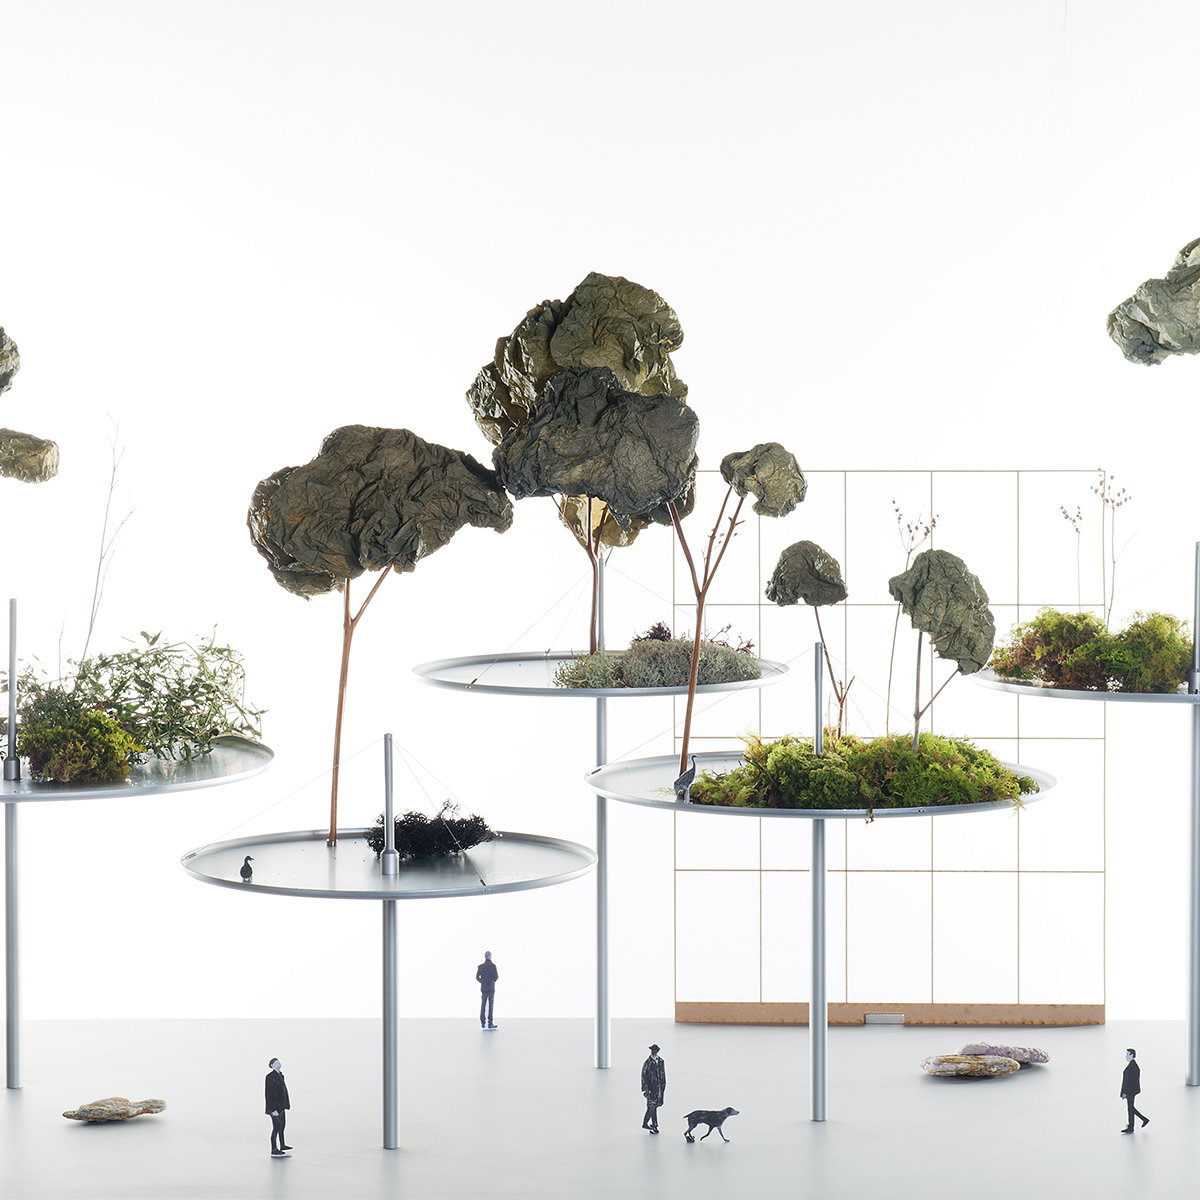 Ronan and Erwan Bouroullec - Urban Daydreaming at HKDI Gallery